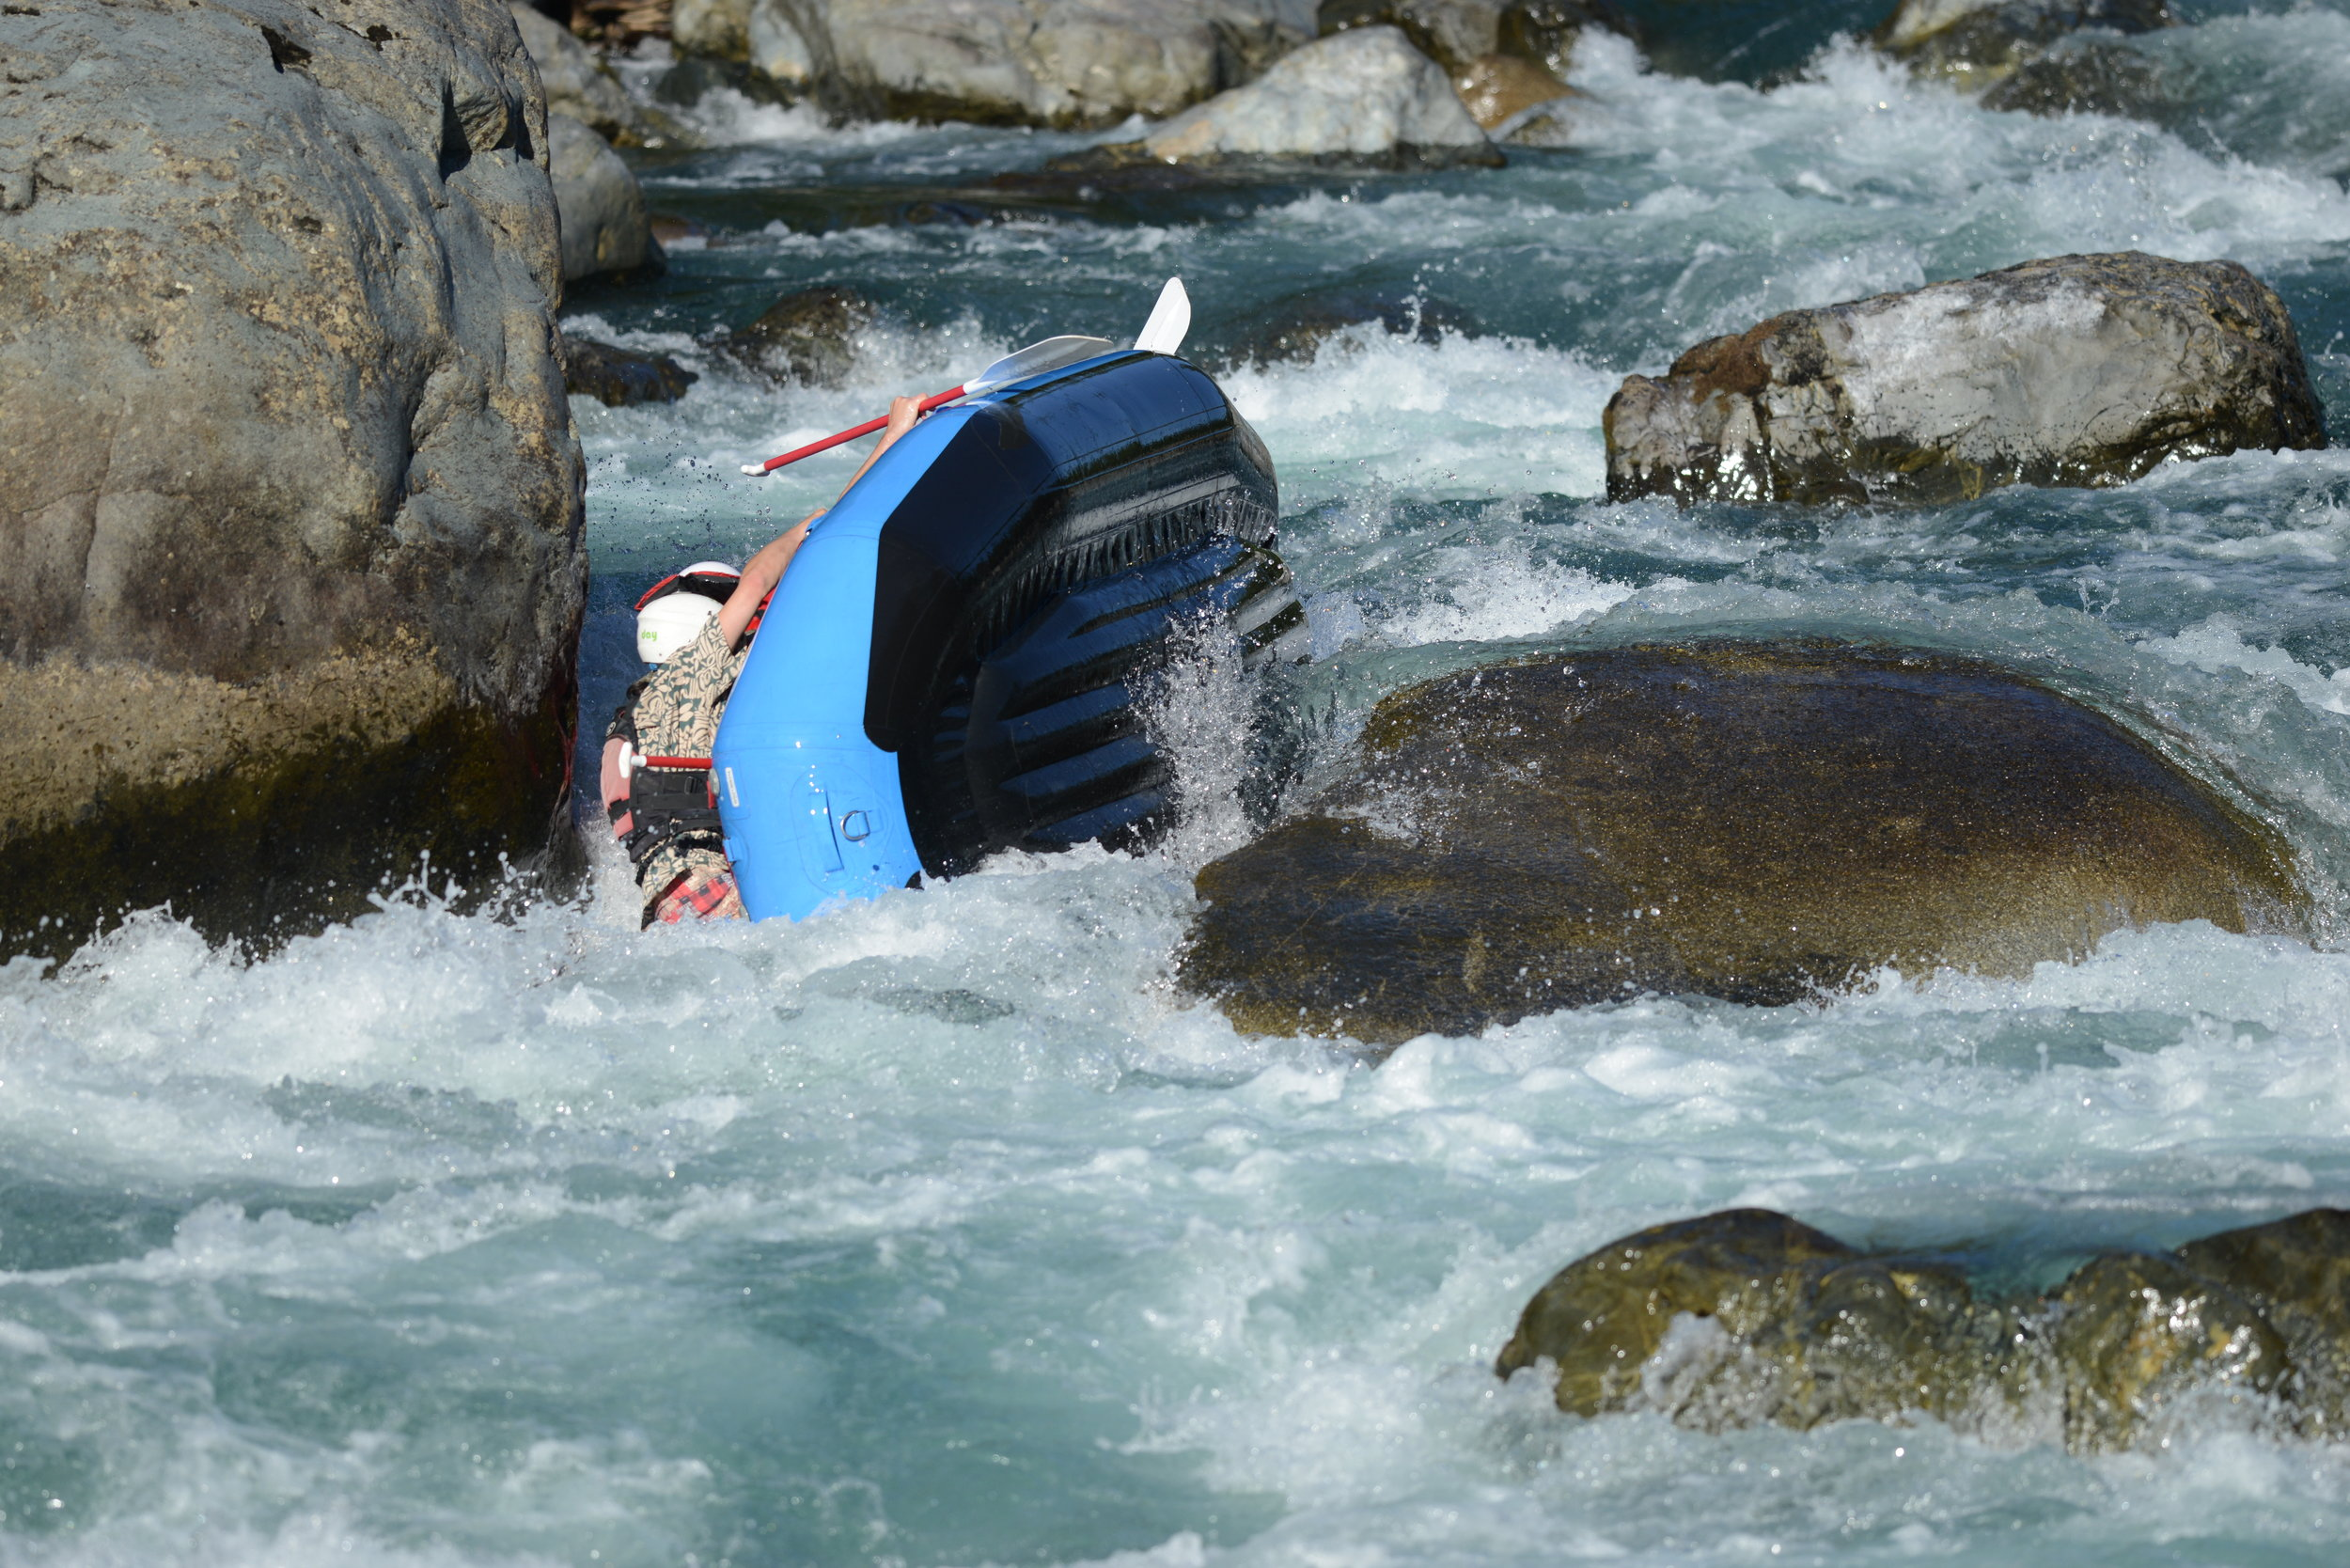 The NRS E-130A whitewater raft (action photo included for added effect)